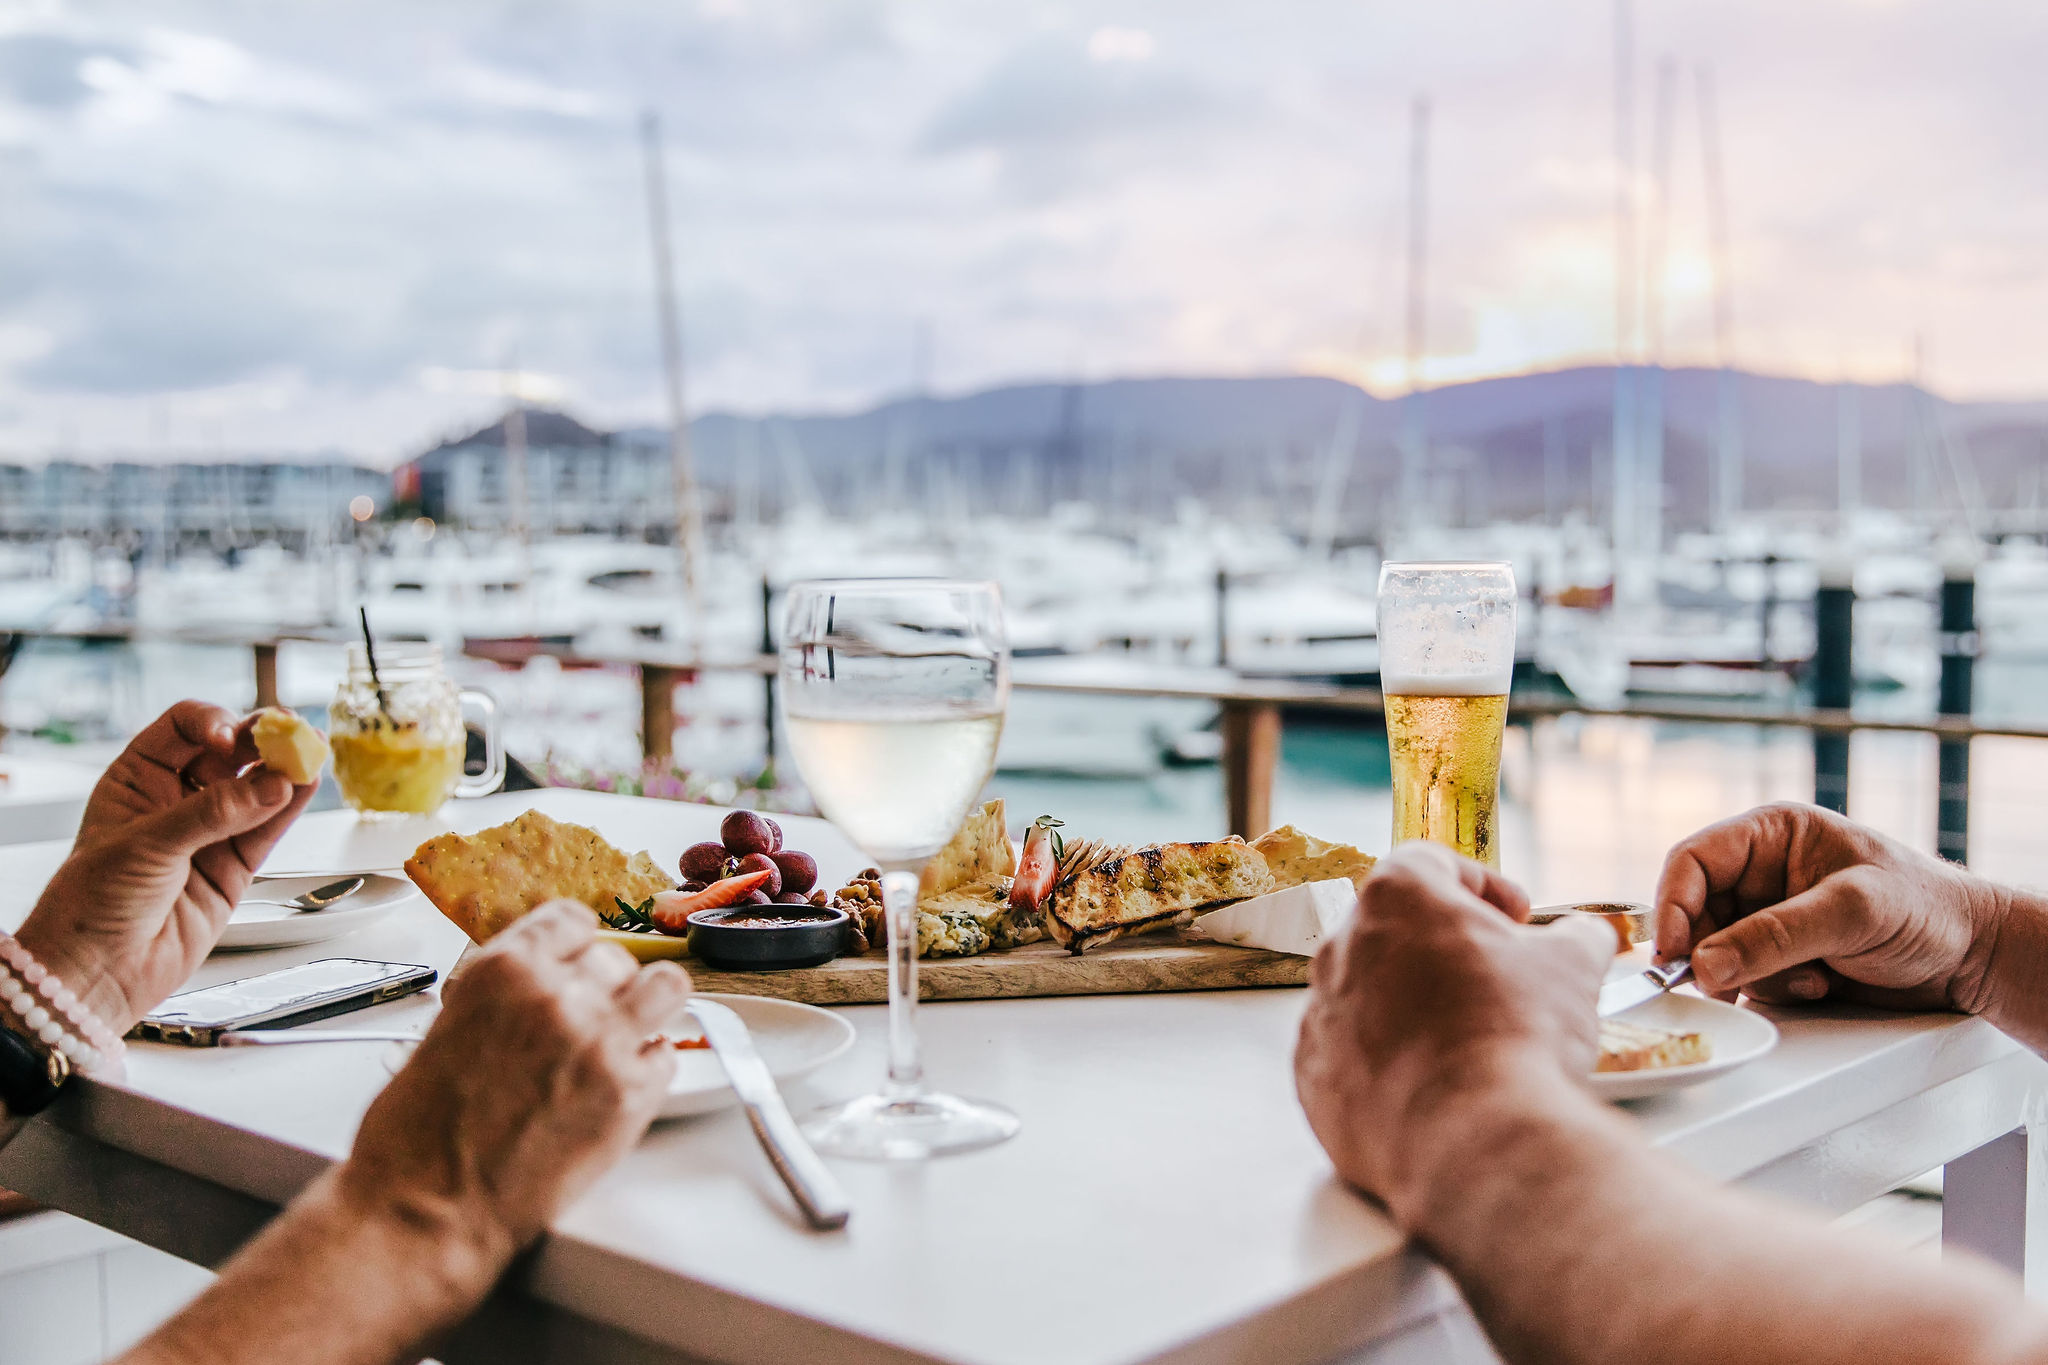 Seafood plater with marina view